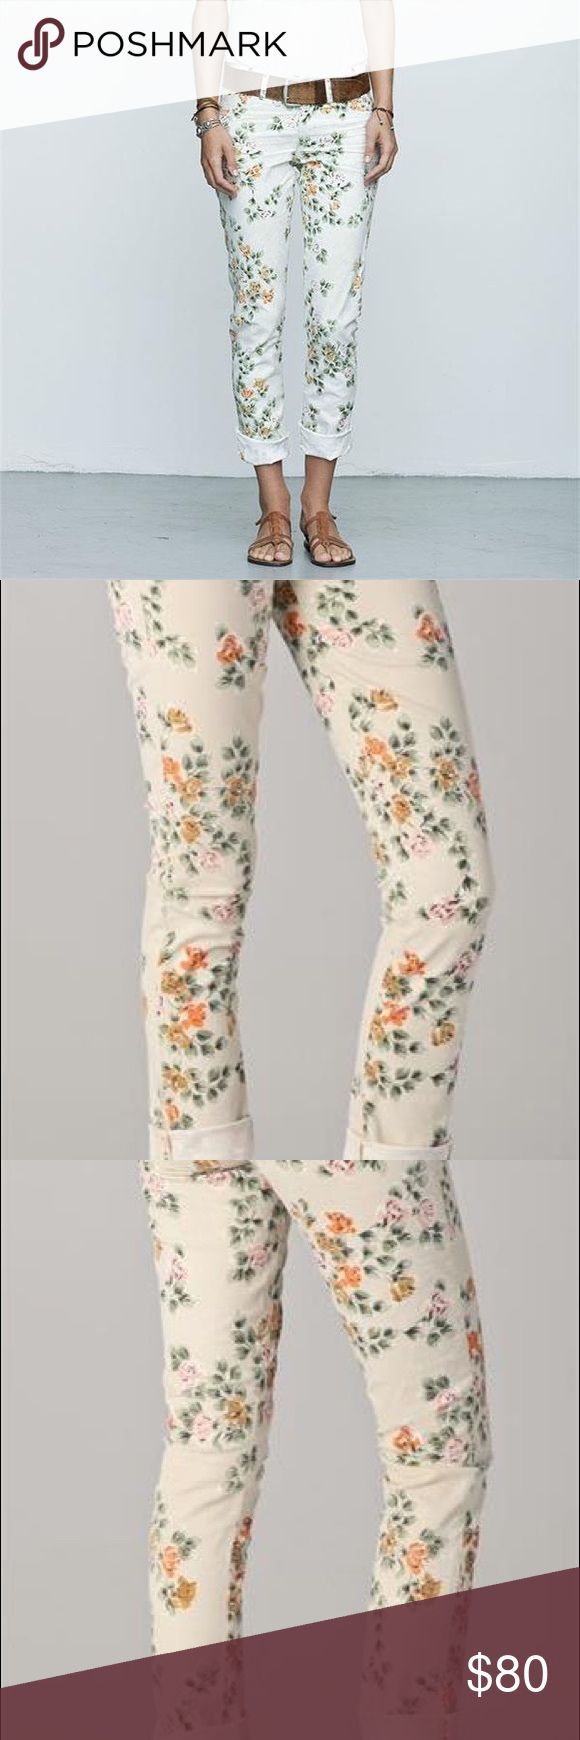 """CITIZENS OF HUMANITY Mandy Floral Jeans (28) Anthropologie's CITIZENS OF HUMANITY Mandy Floral Roll Up Jeans...womens size 28. 97% Cotton, 3% Lycra. Color is natural floral. A vibrant vintage floral patterns a pair of retro high-waisted semi-skinny jeans fashioned from stretch denim with a sleek, modern silhouette. 5-pocket styling, single button closure and worn edges. Worn once, remains in perfect condition--will include tags.  * 9"""" rise. 31"""" inseam. * 13"""" leg opening. Citizens Of Humanity…"""